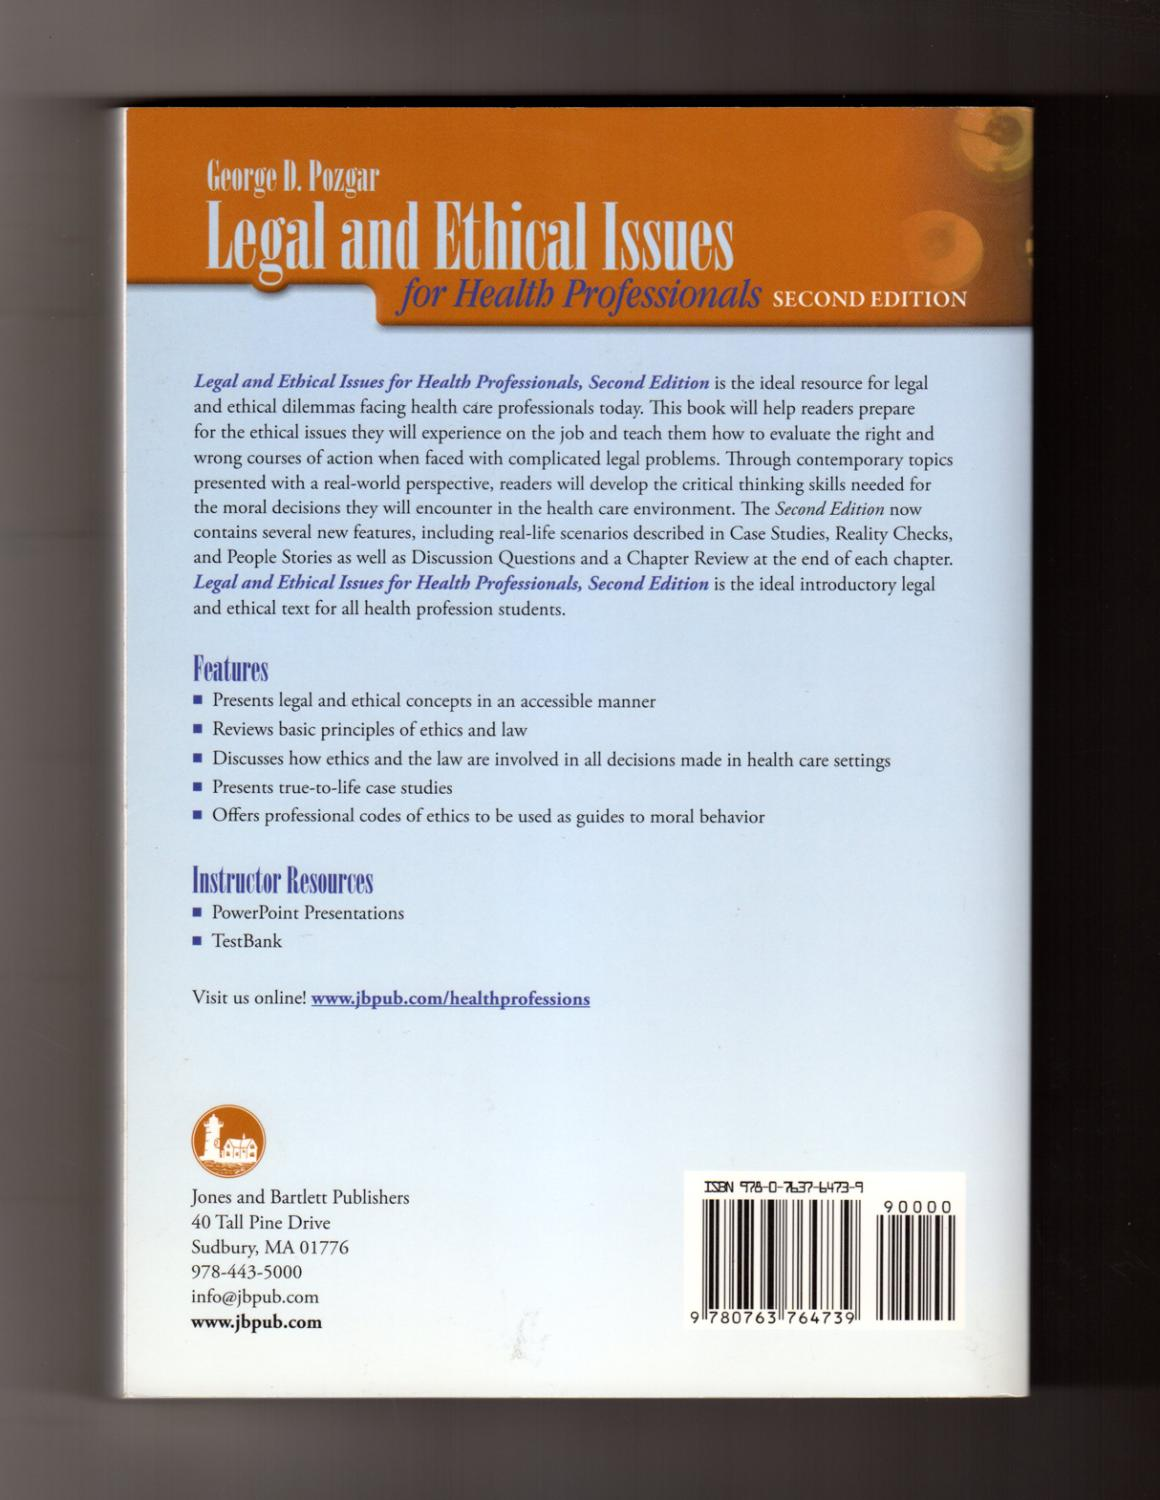 ... Legal and Ethical Issues for Health Professionals: George D. Pozgar ...